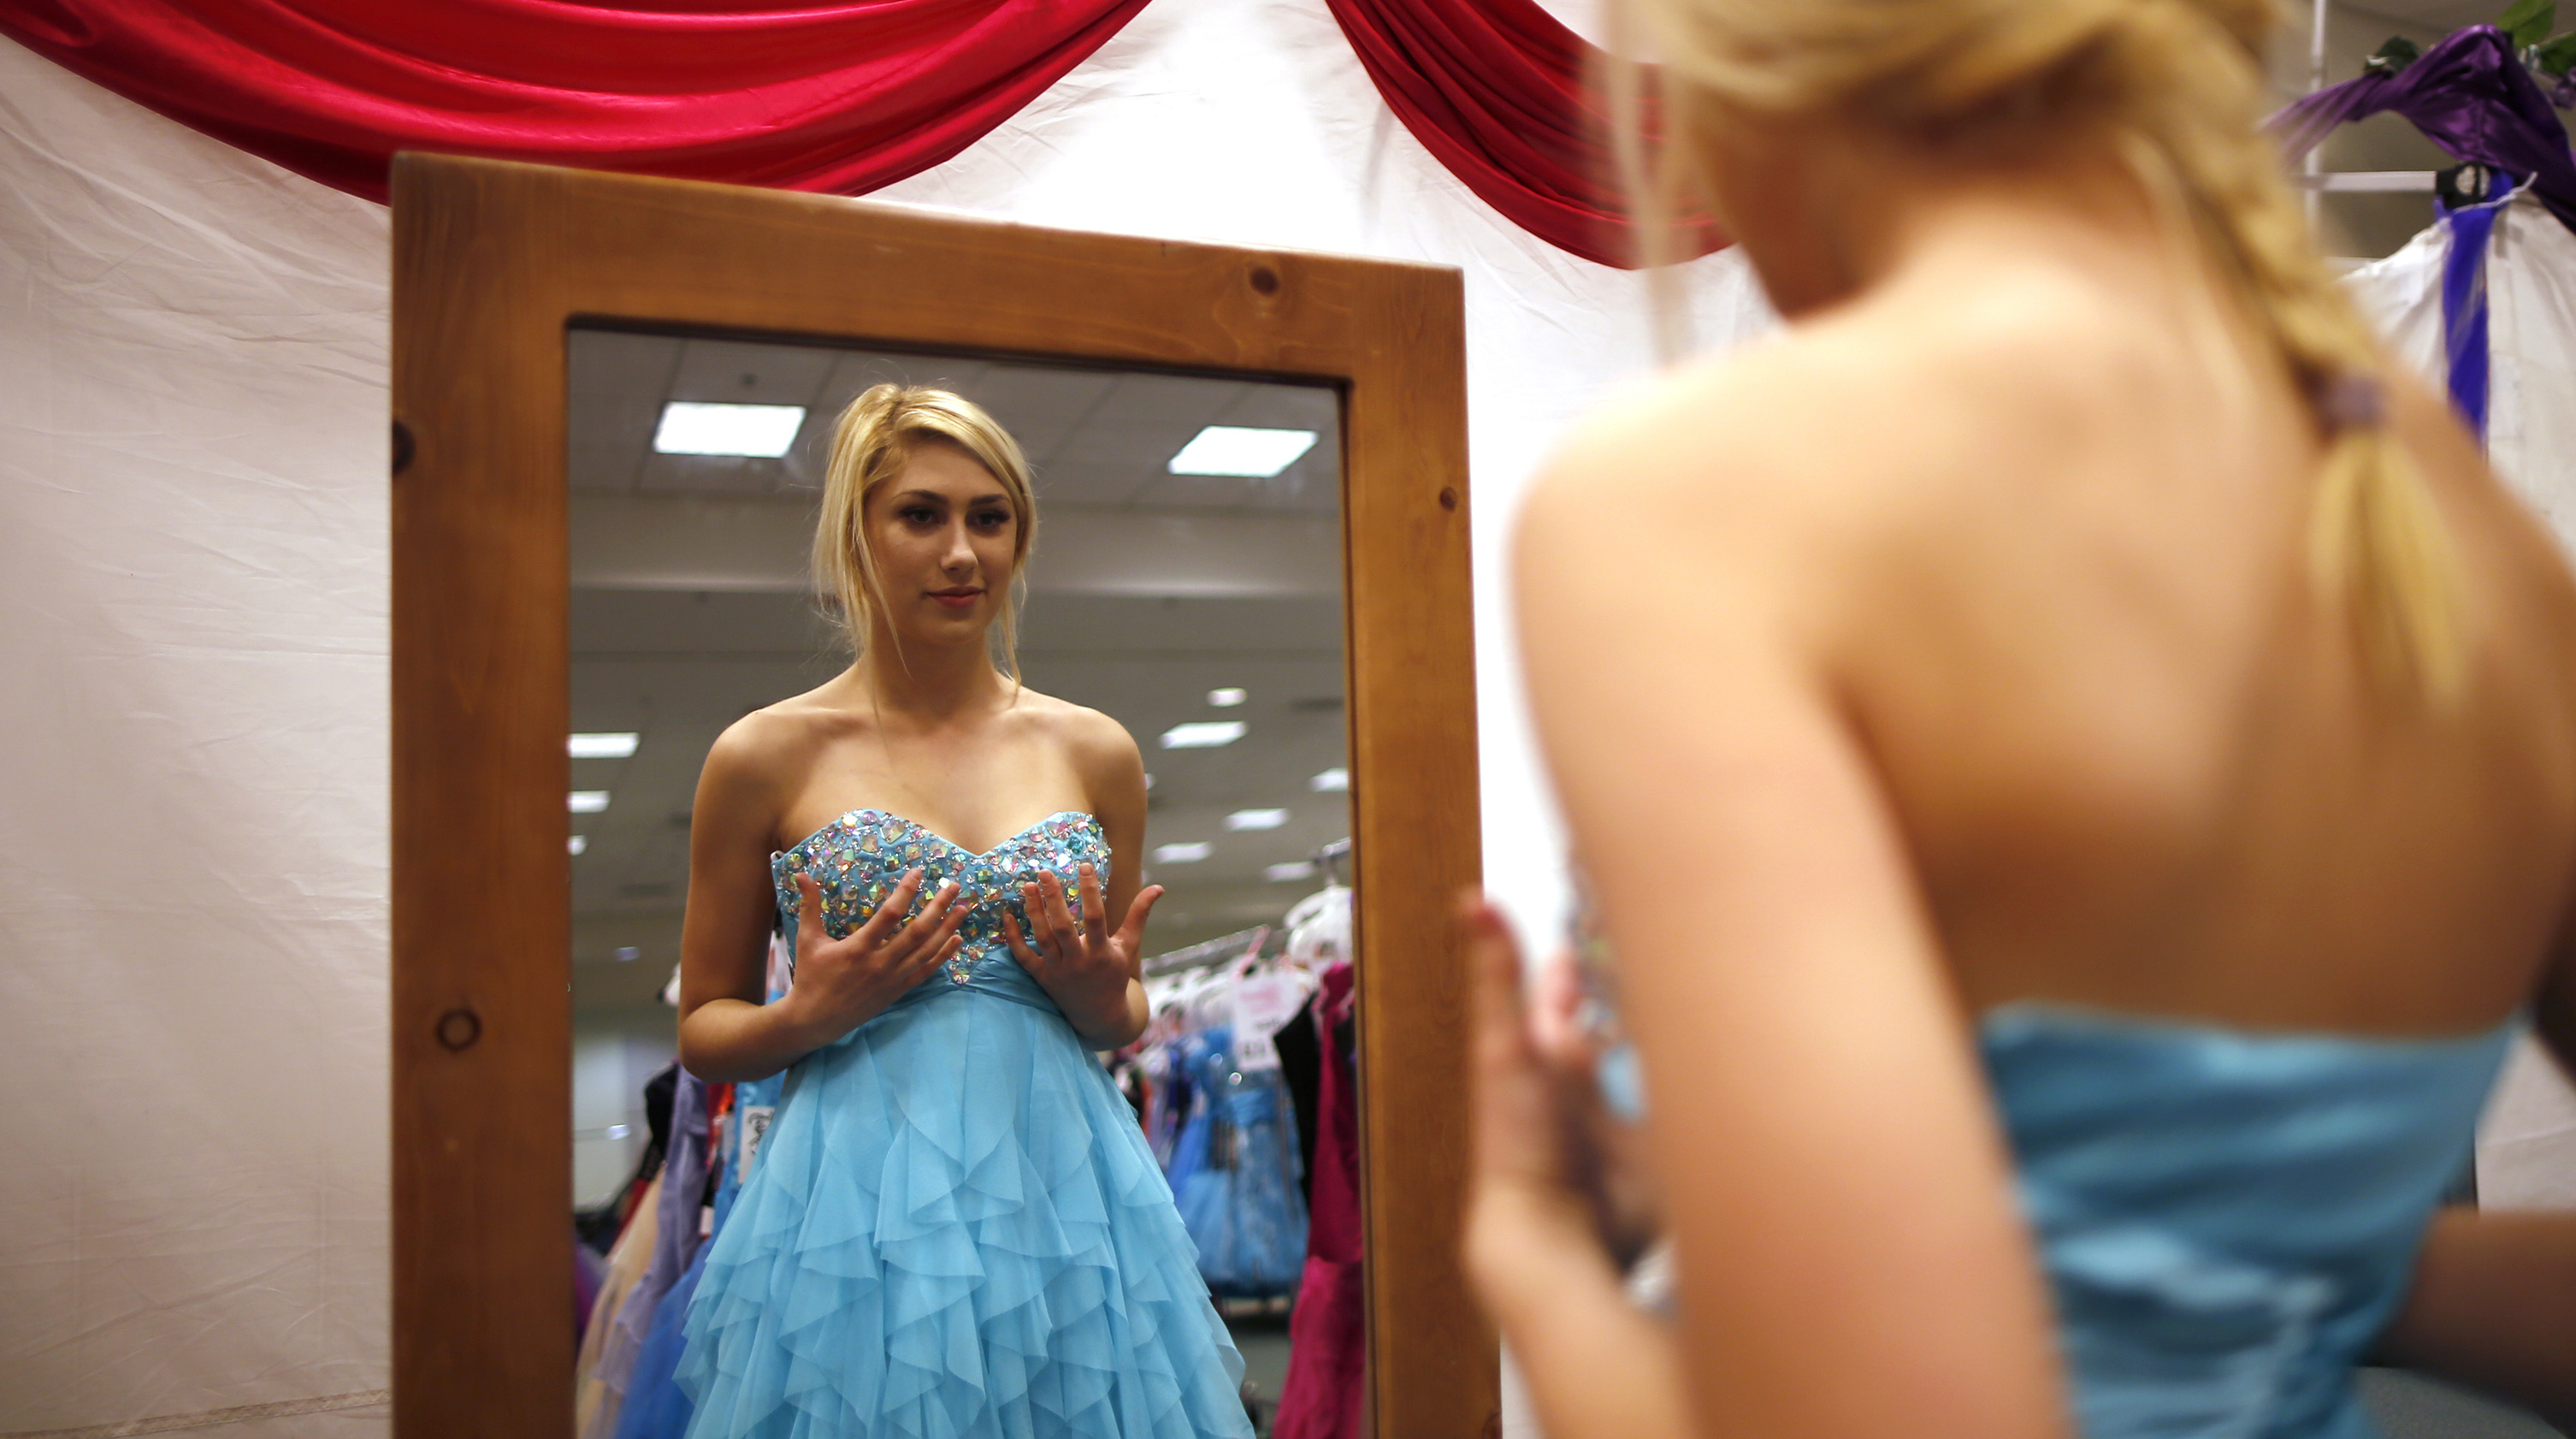 Jasmine Boyle, 17, tries on a prom dress at the Glamour Gowns event in Los Angeles, California March 28, 2014. The event gives prom dresses to more than 350 young women in the Los Angeles foster care system every year. Picture taken March 28, 2014. REUTERS/Lucy Nicholson (UNITED STATES - Tags: SOCIETY) - RTR3J4O3